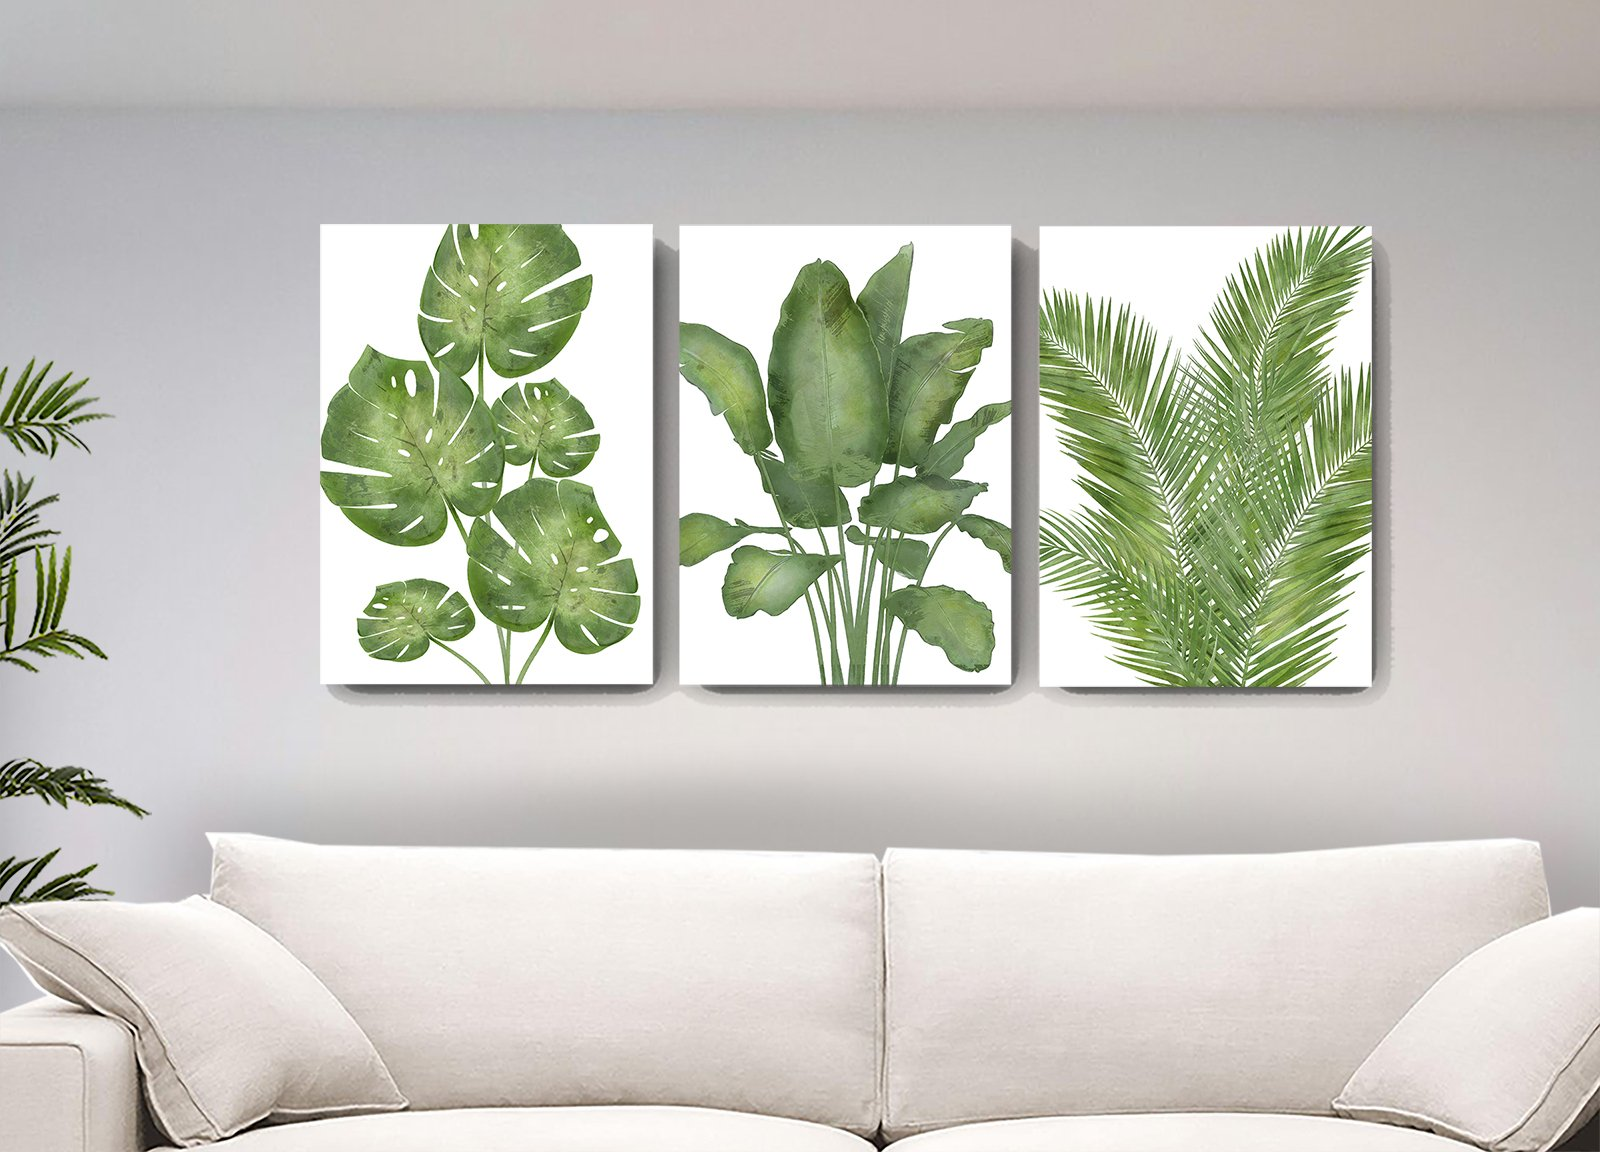 botanical wall decor banana tree palm leaf canvas wall art watercolor painting tropical leaves living room bedroom wall decoration set of 3 muralmax 8 1600x